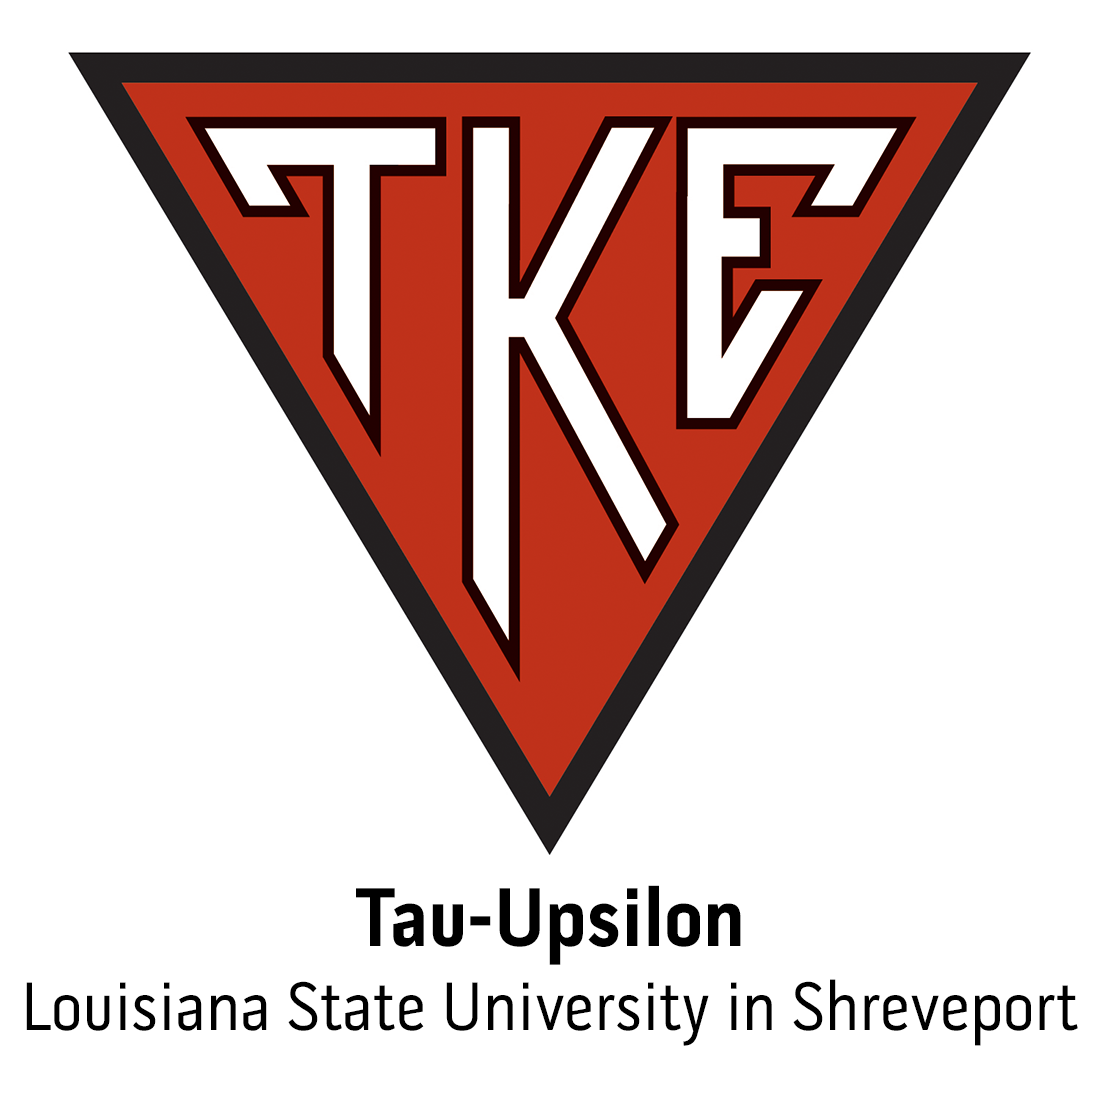 Tau-Upsilon Chapter at Louisiana State University in Shreveport